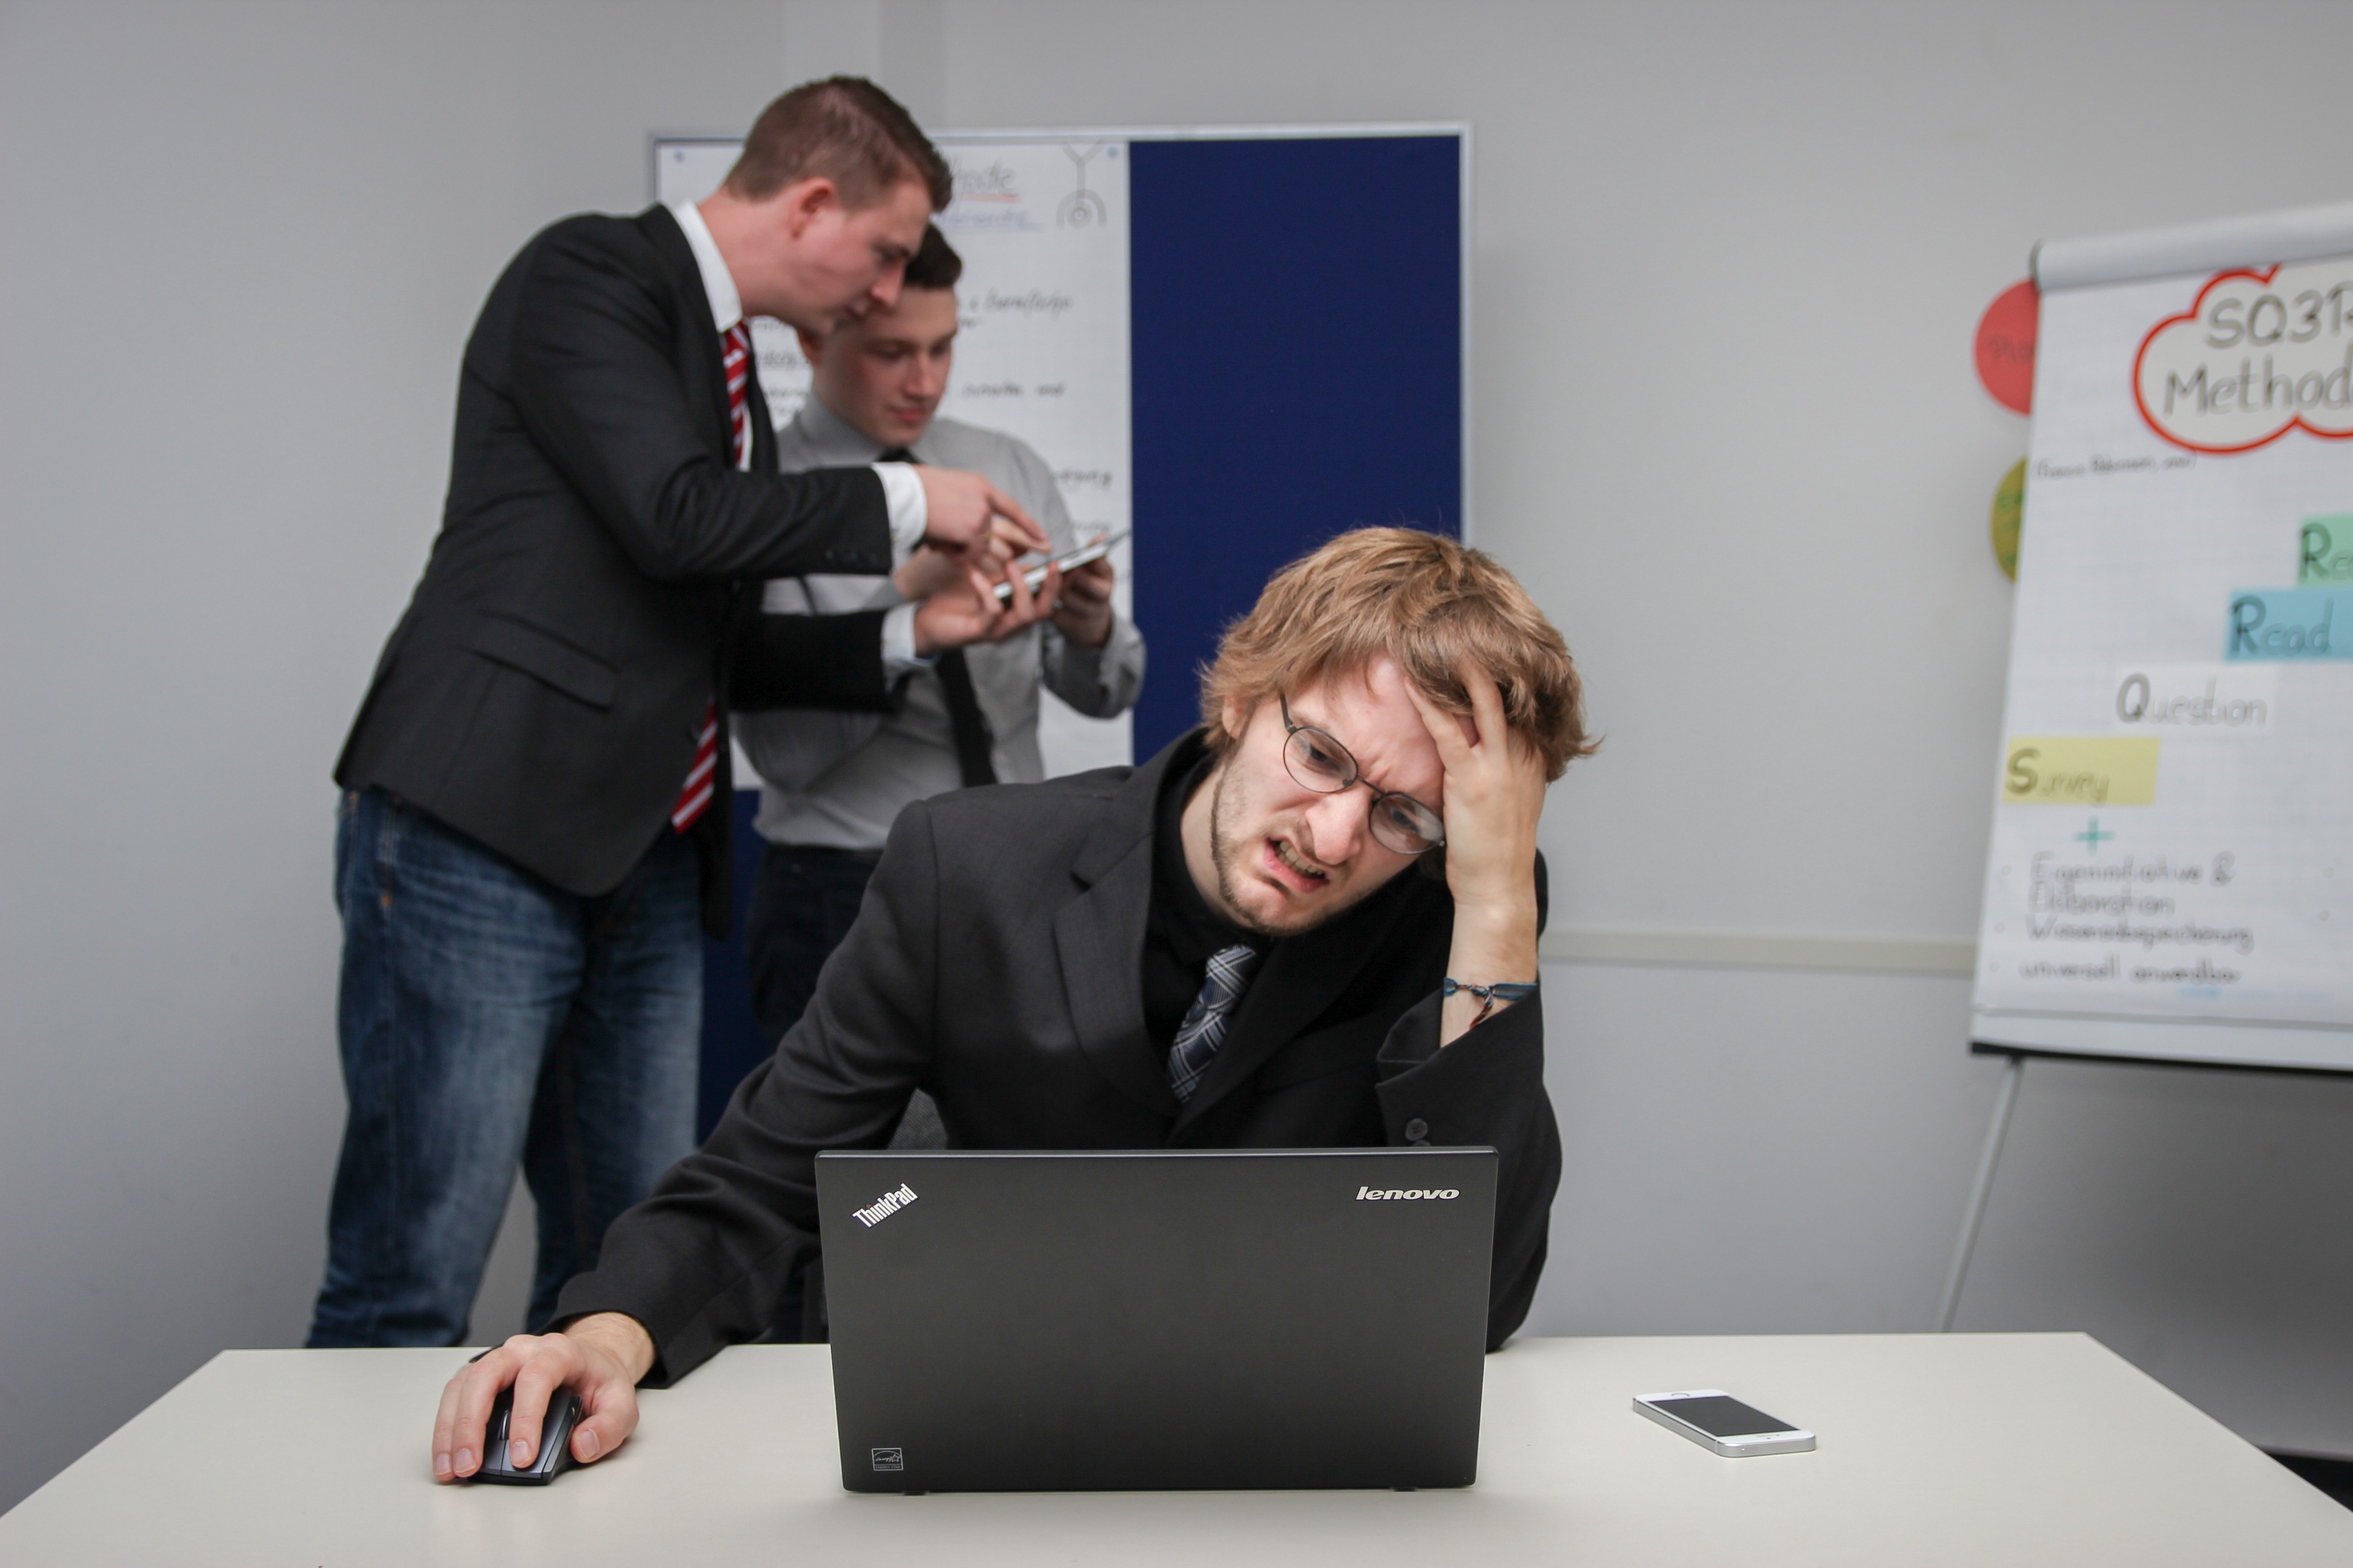 Headache because of virtual executive assistants